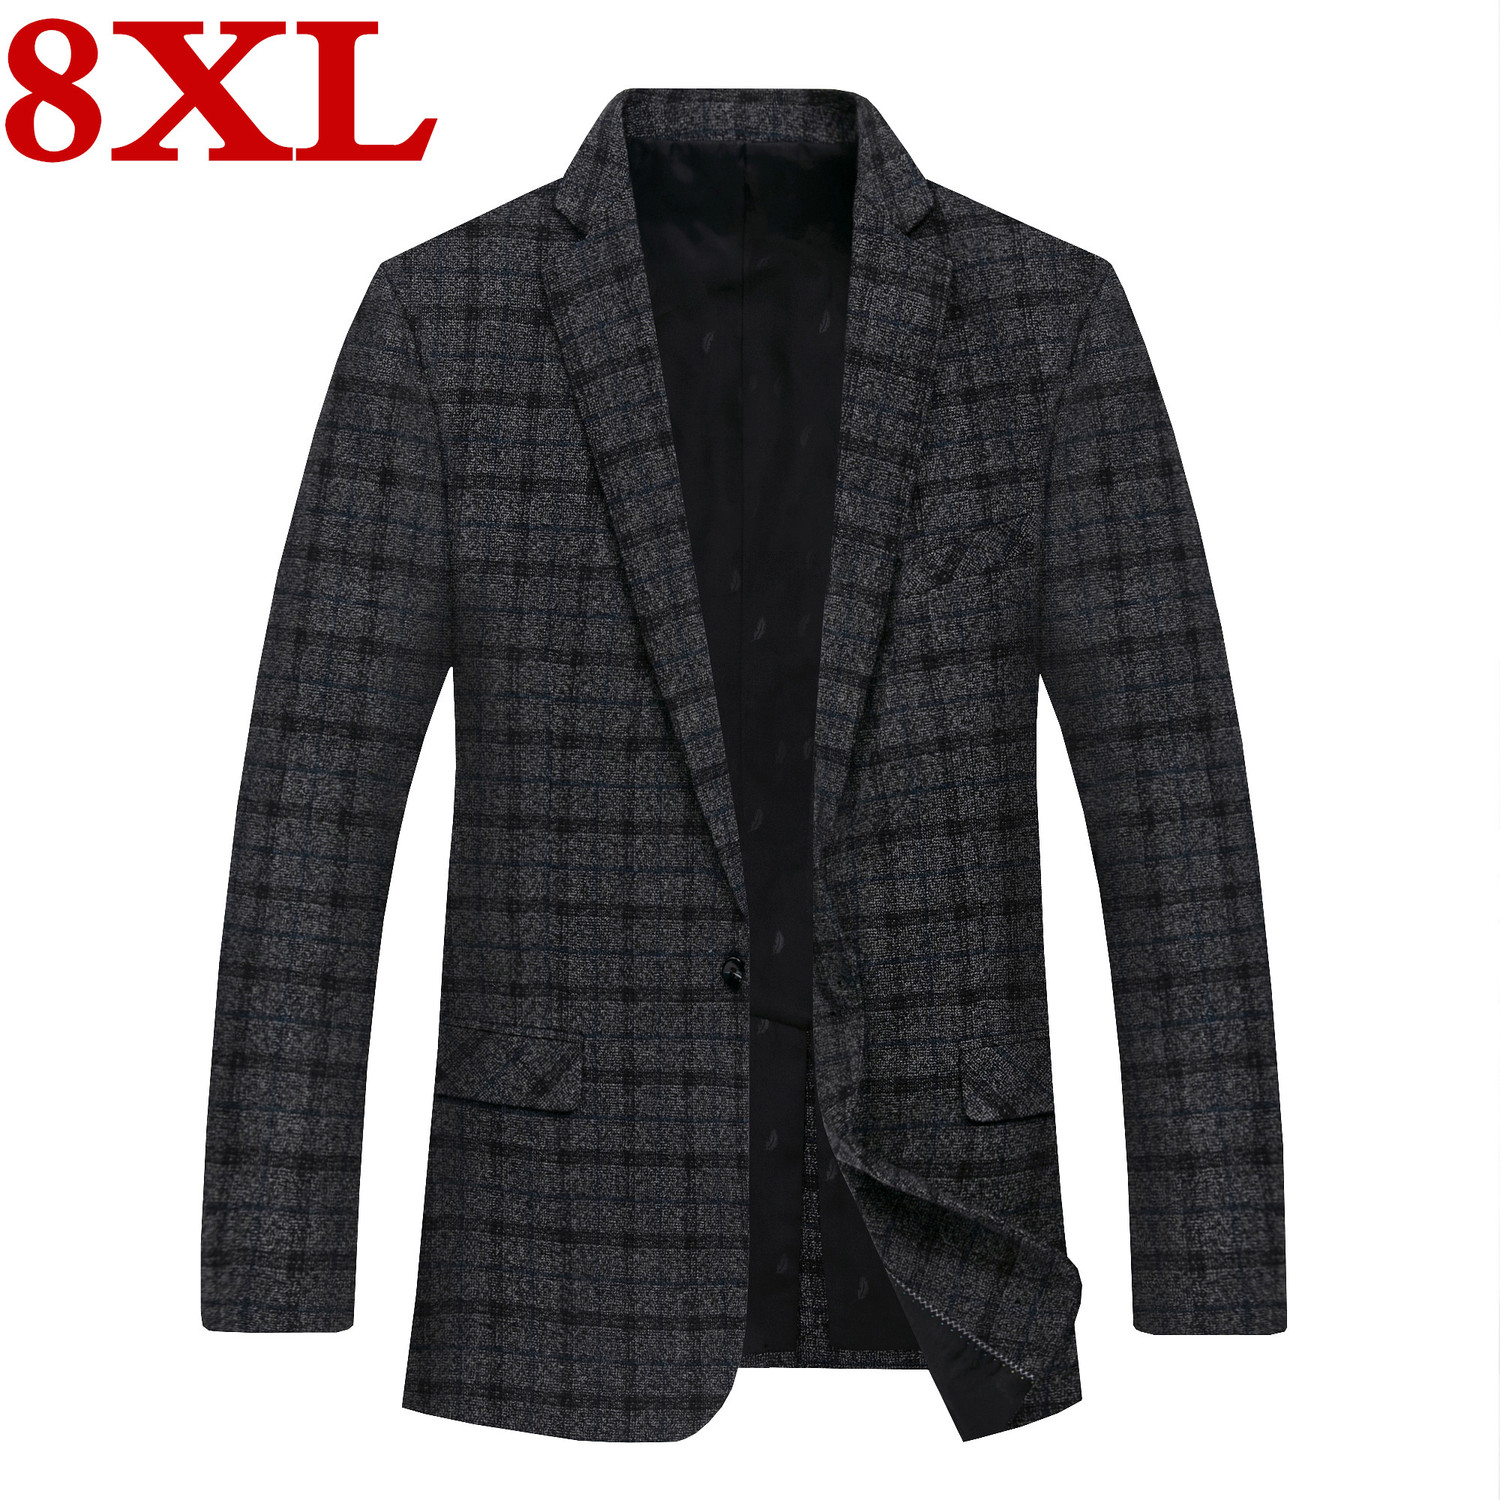 Plus Size 8XL 7XL 6XL New Casual Suit For Middle-aged Men High-end Spring And Autumn Lattice Suit Jacket Men Jackets And Blazers